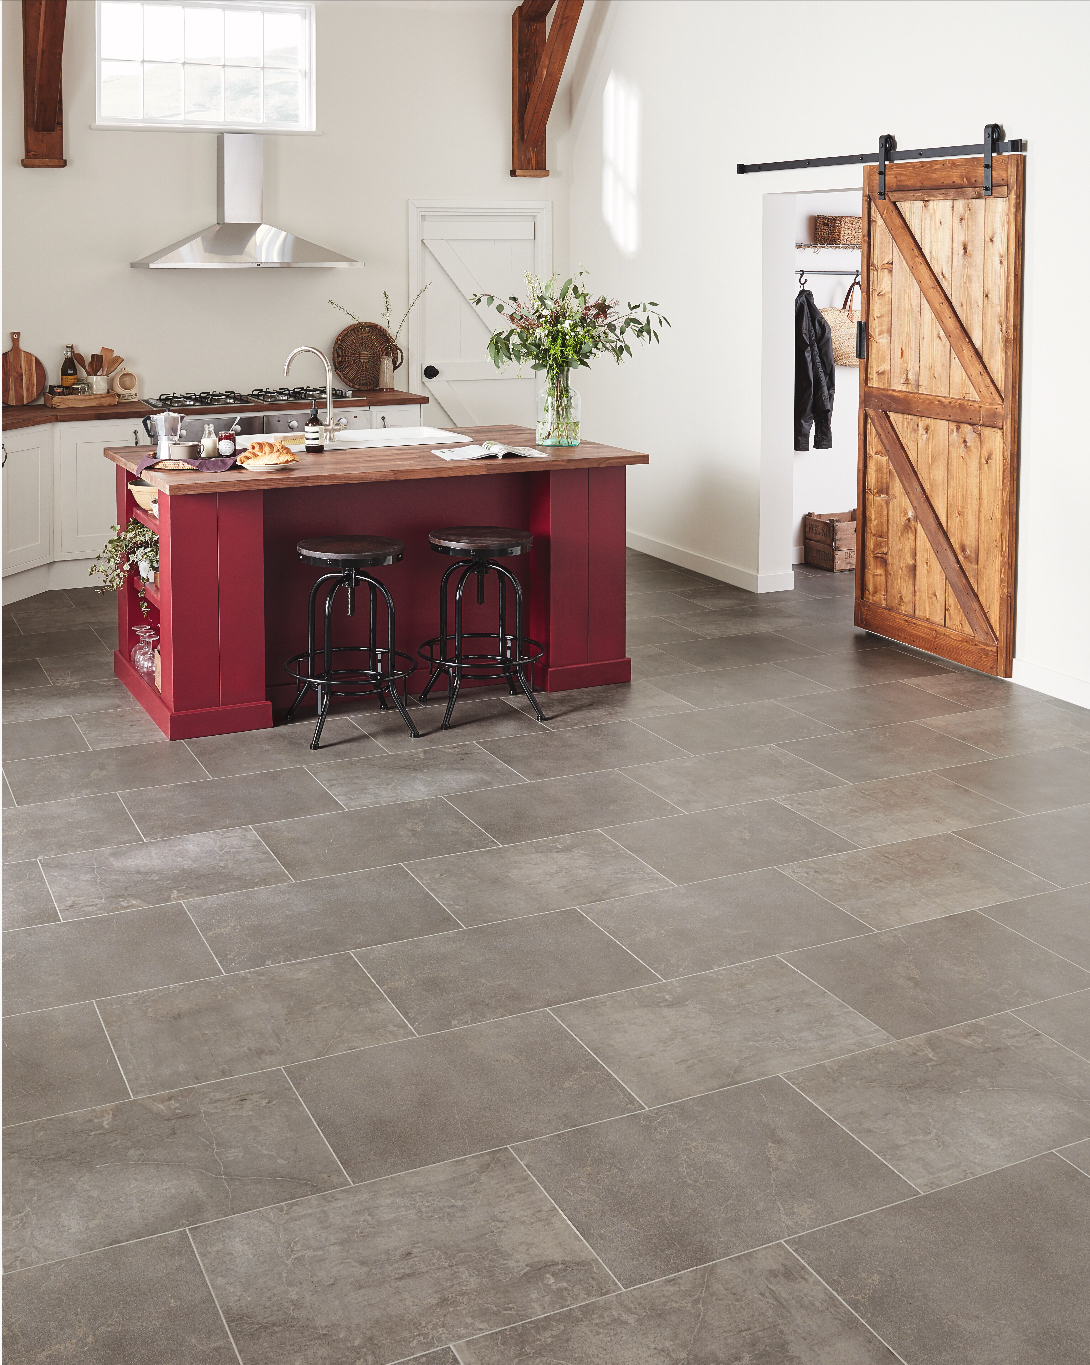 White kitchen with grey tile flooring a red island and wooden features